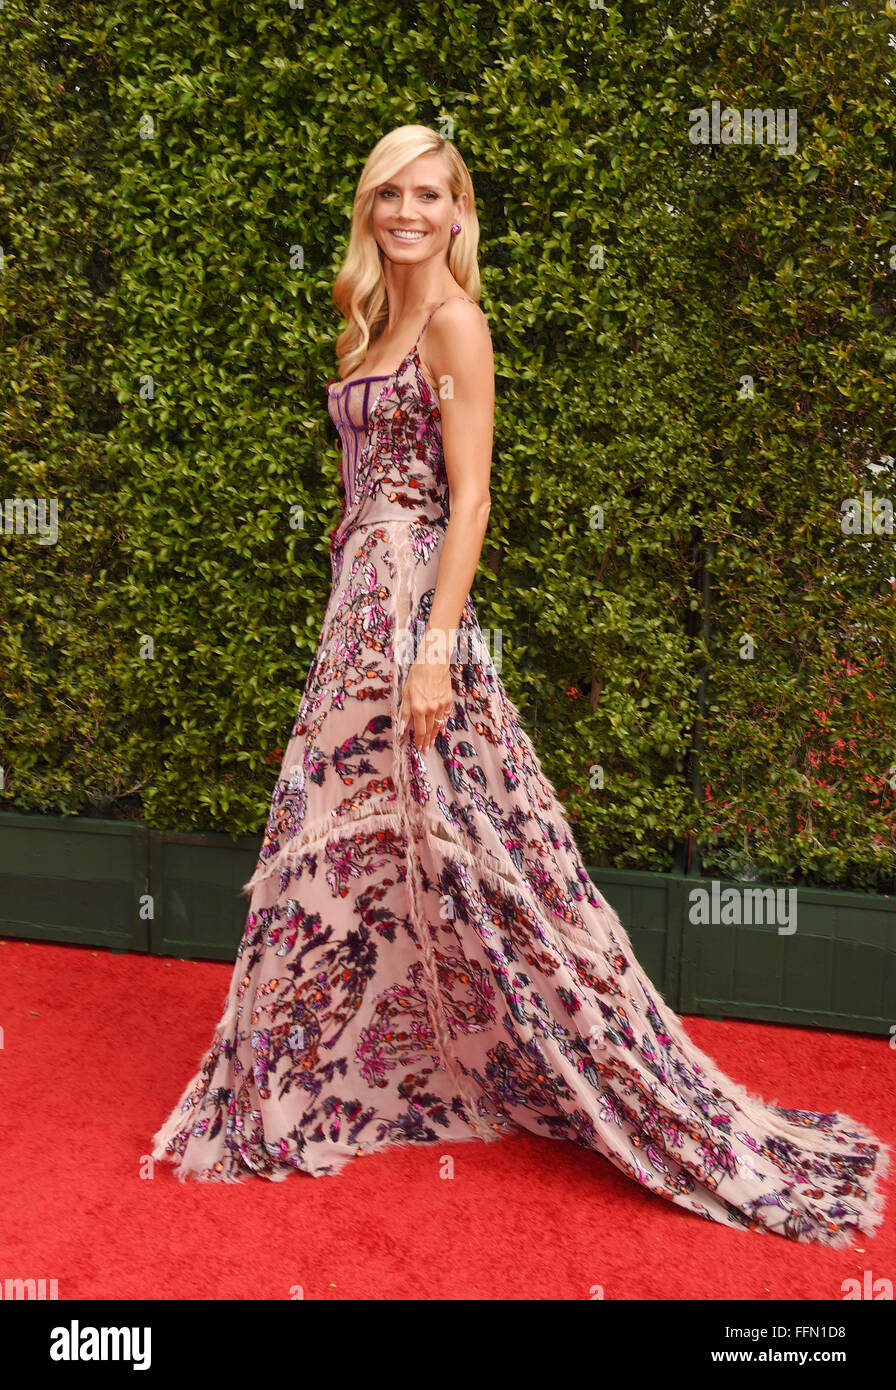 TV personality/model Heidi Klum attends the 2015 Creative Arts Emmy Awards at Microsoft Theater on September 12, - Stock Image